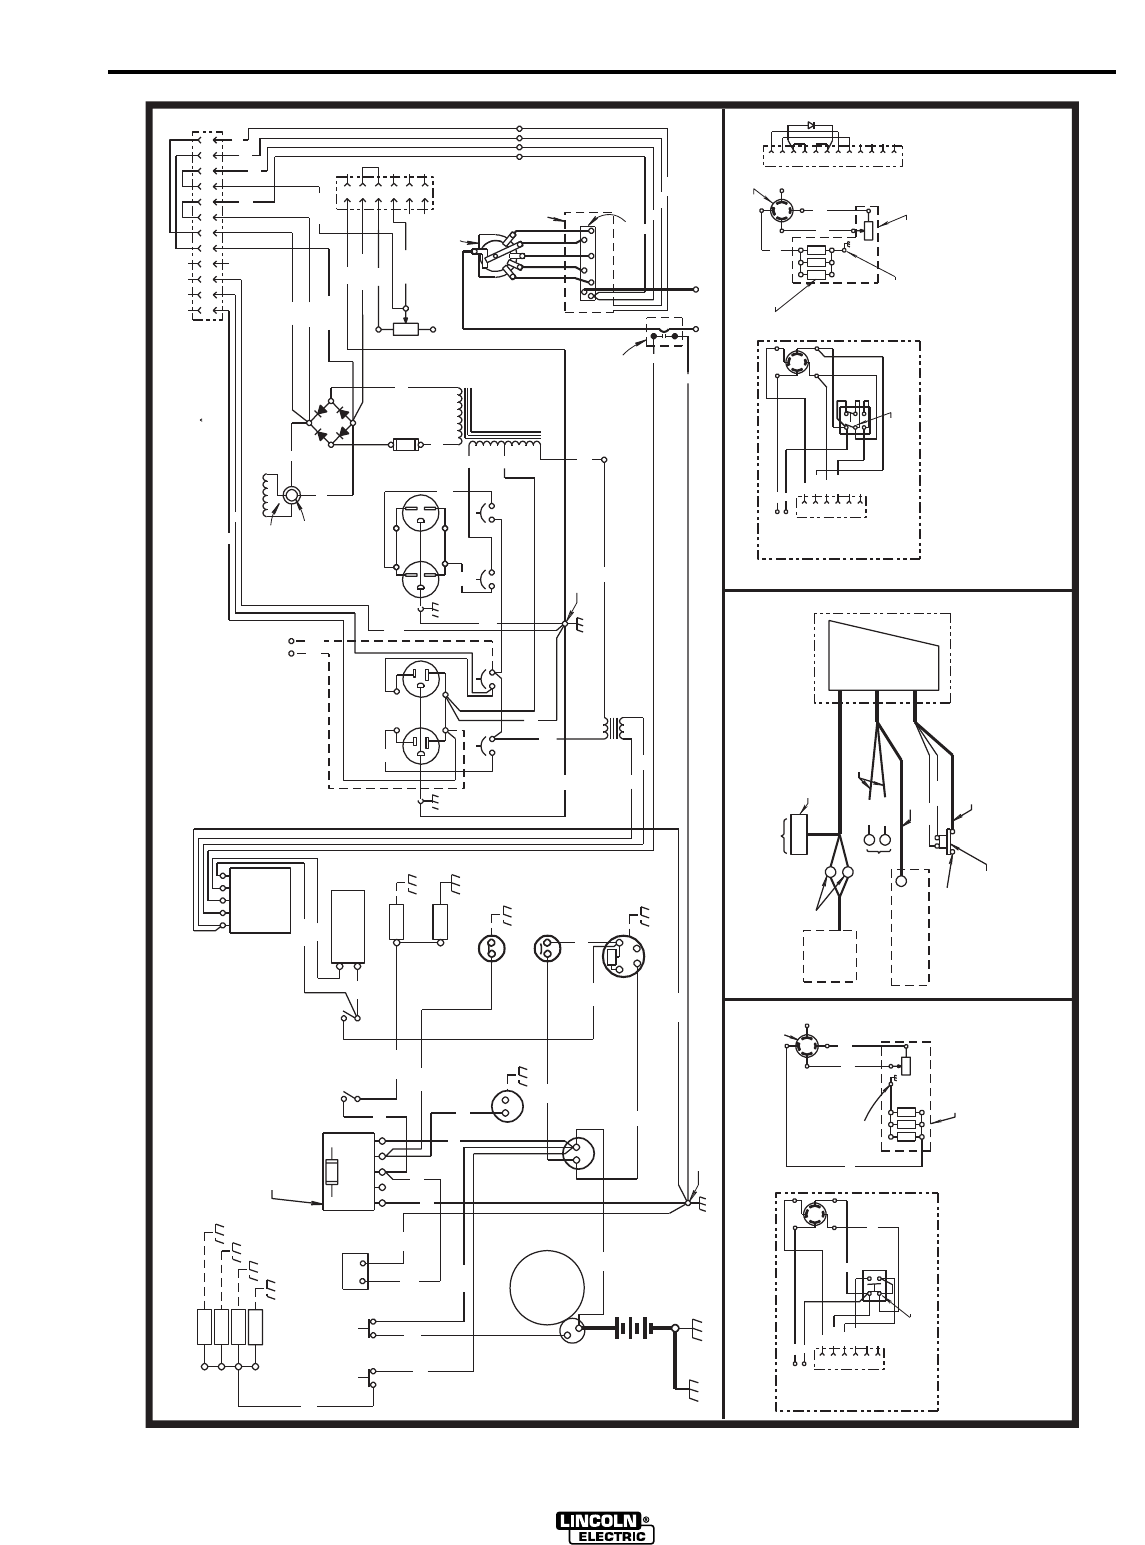 lincoln 225 wiring diagram pdf with Lincoln Electric Welder Wiring Diagram on Welder Miller Bobcat 225 Wiring Diagram in addition Standby Generator Wiring Diagram likewise Century Welder Wiring Diagrams For A also Hobart Welder Wiring Diagram likewise Plasma Cutter Wiring Diagram.